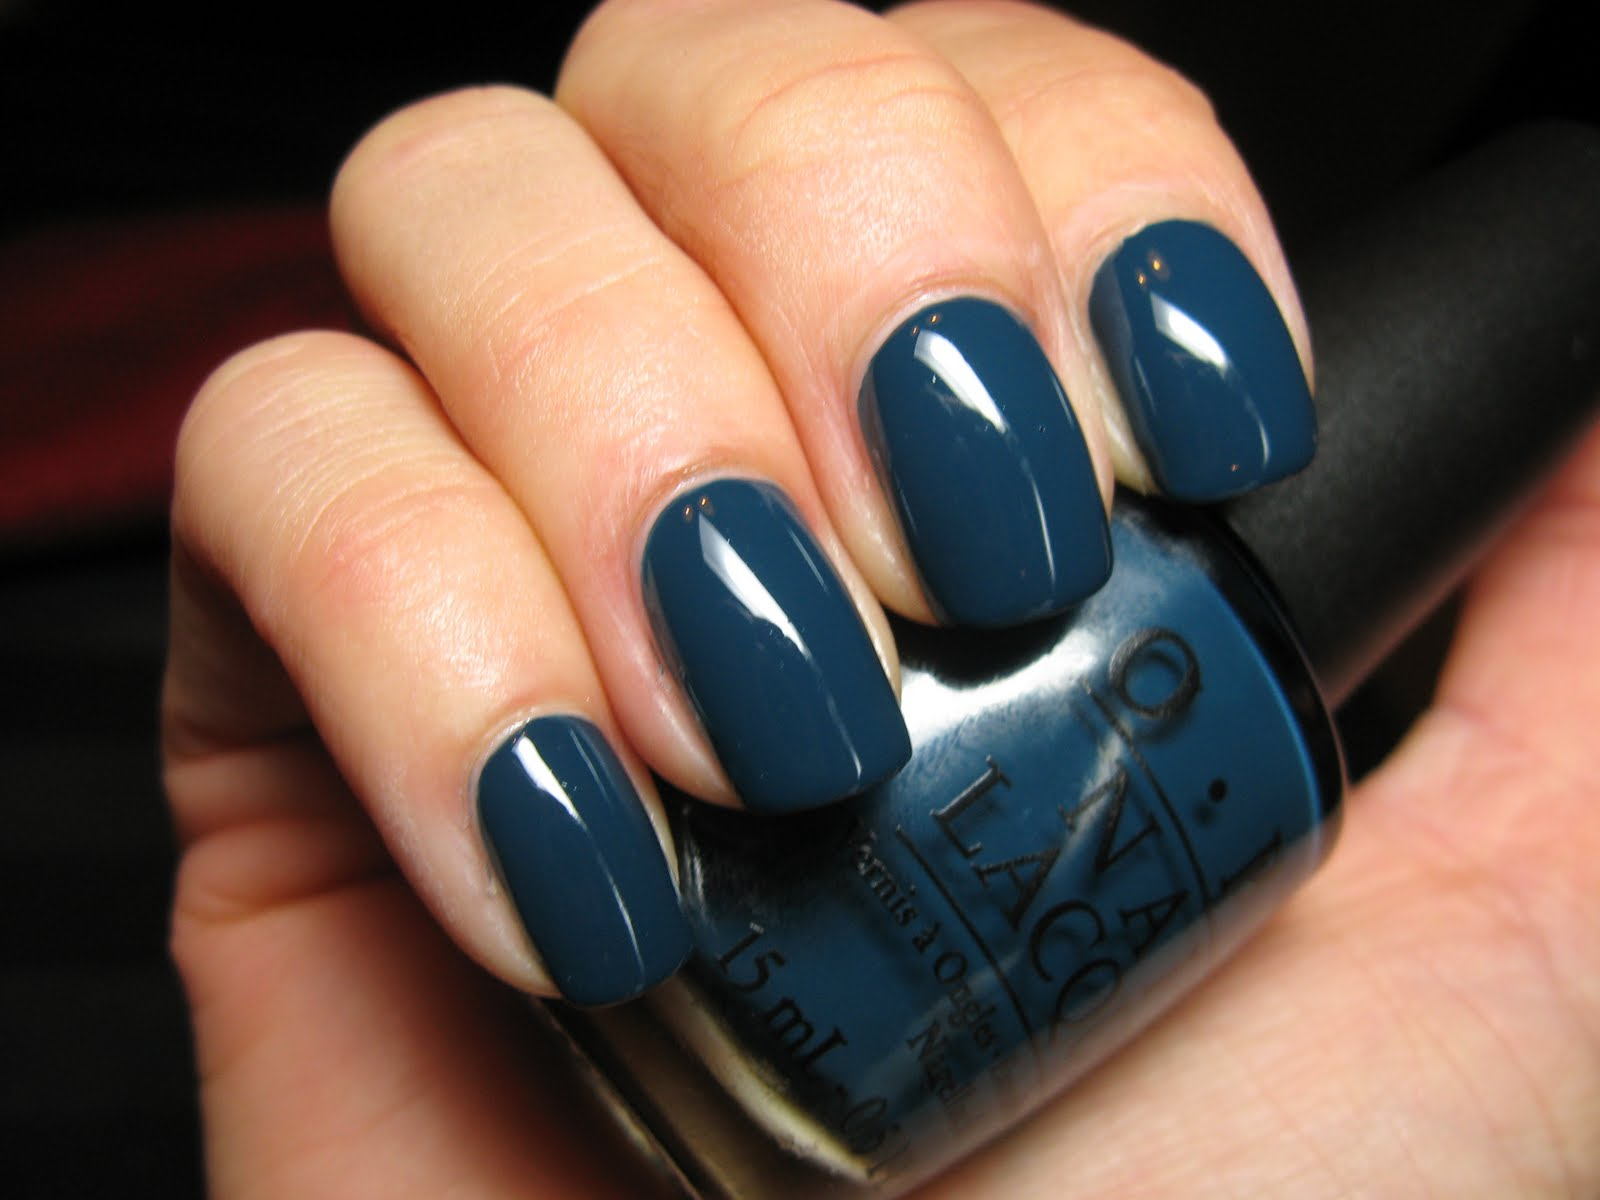 Polished Casual: OPI Ski Teal We Drop